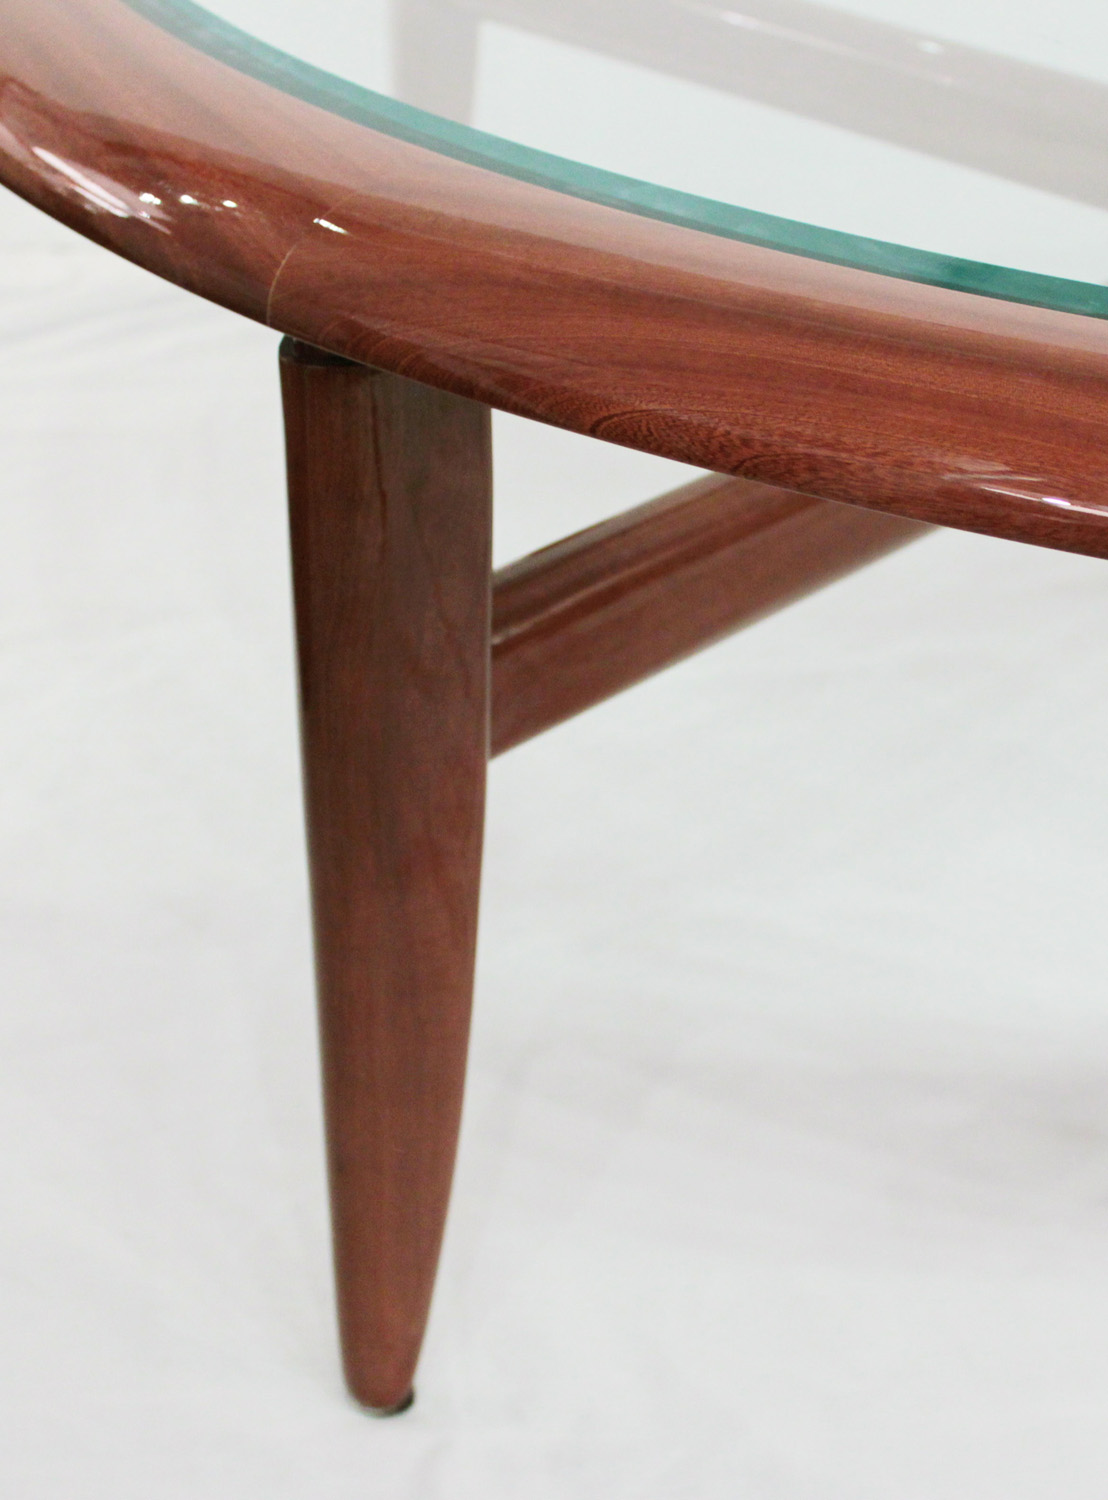 Pace 75 round mahogany X base coffeetable278 detail1 hires.jpg